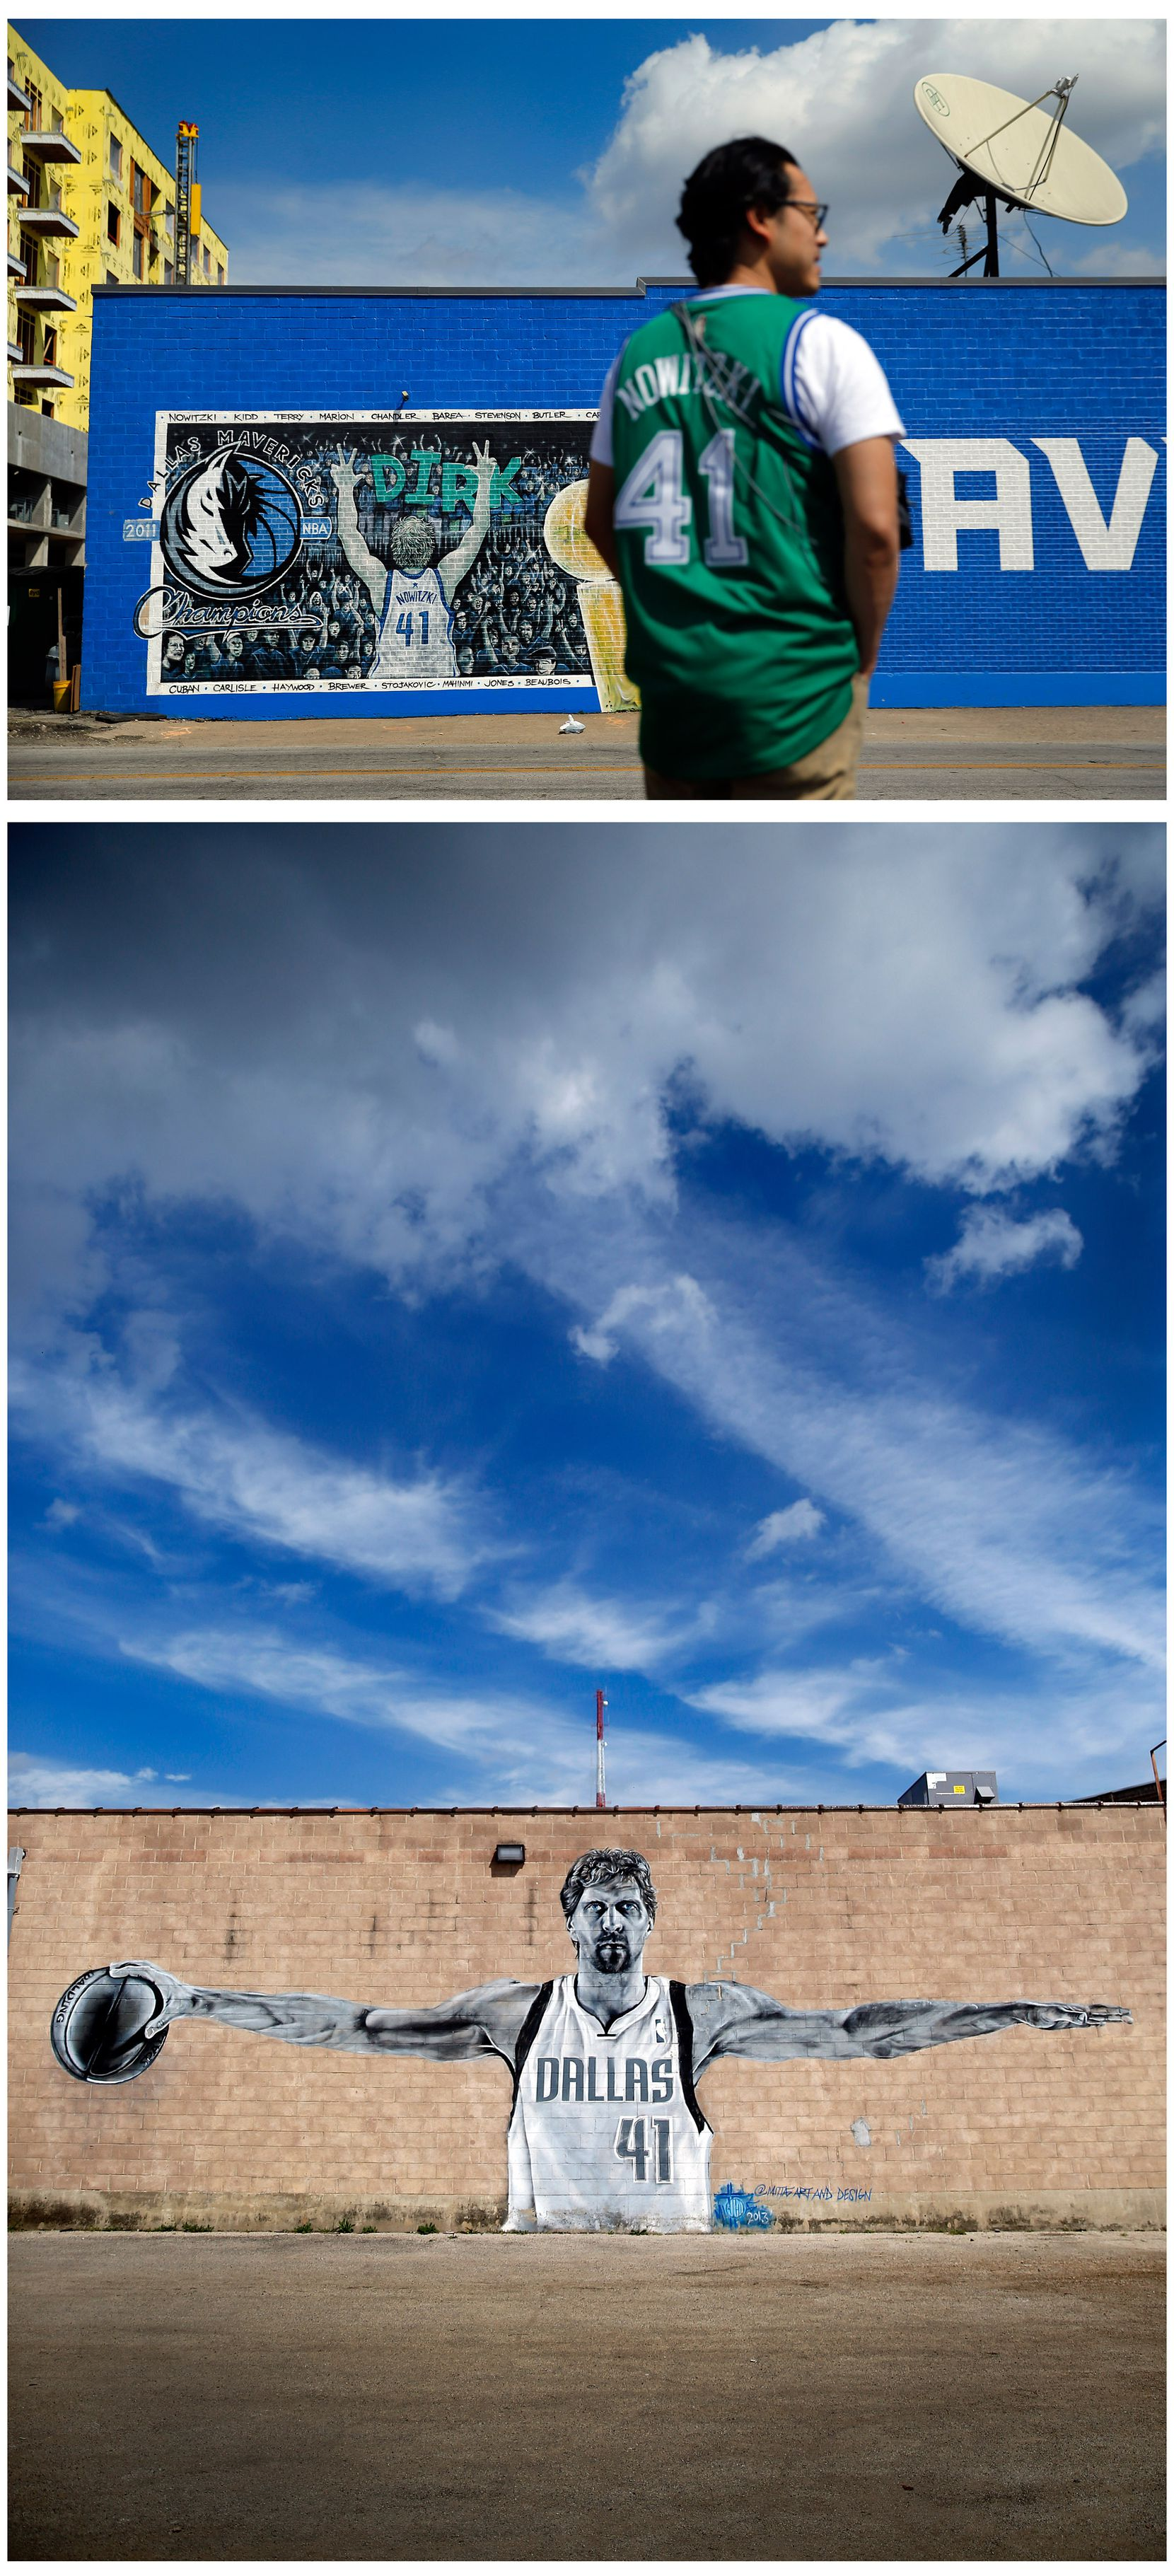 Top: Chuckarin Chuskul, a participant in the filming of a tribute video to Dallas Mavericks forward Dirk Nowitzki, waits his turn in front of a mural of the All-Star in Deep Ellum in Dallas on March 24, 2019.  Bottom: A large black and white mural of the Dallas Mavericks All-Star forward is displayed on the side of a Deep Ellum building.